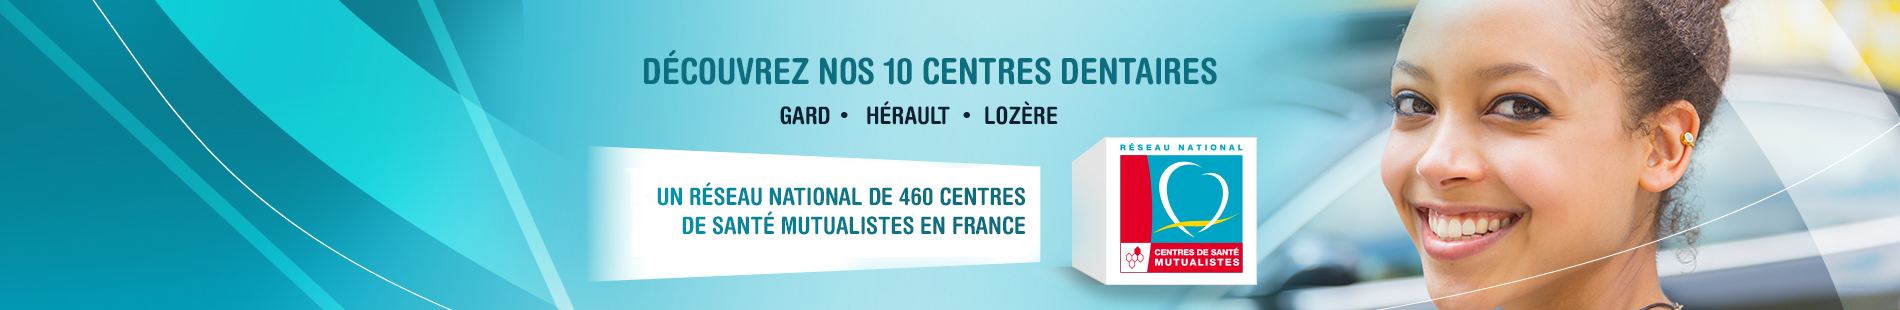 MFGS - Centres dentaires mutualistes